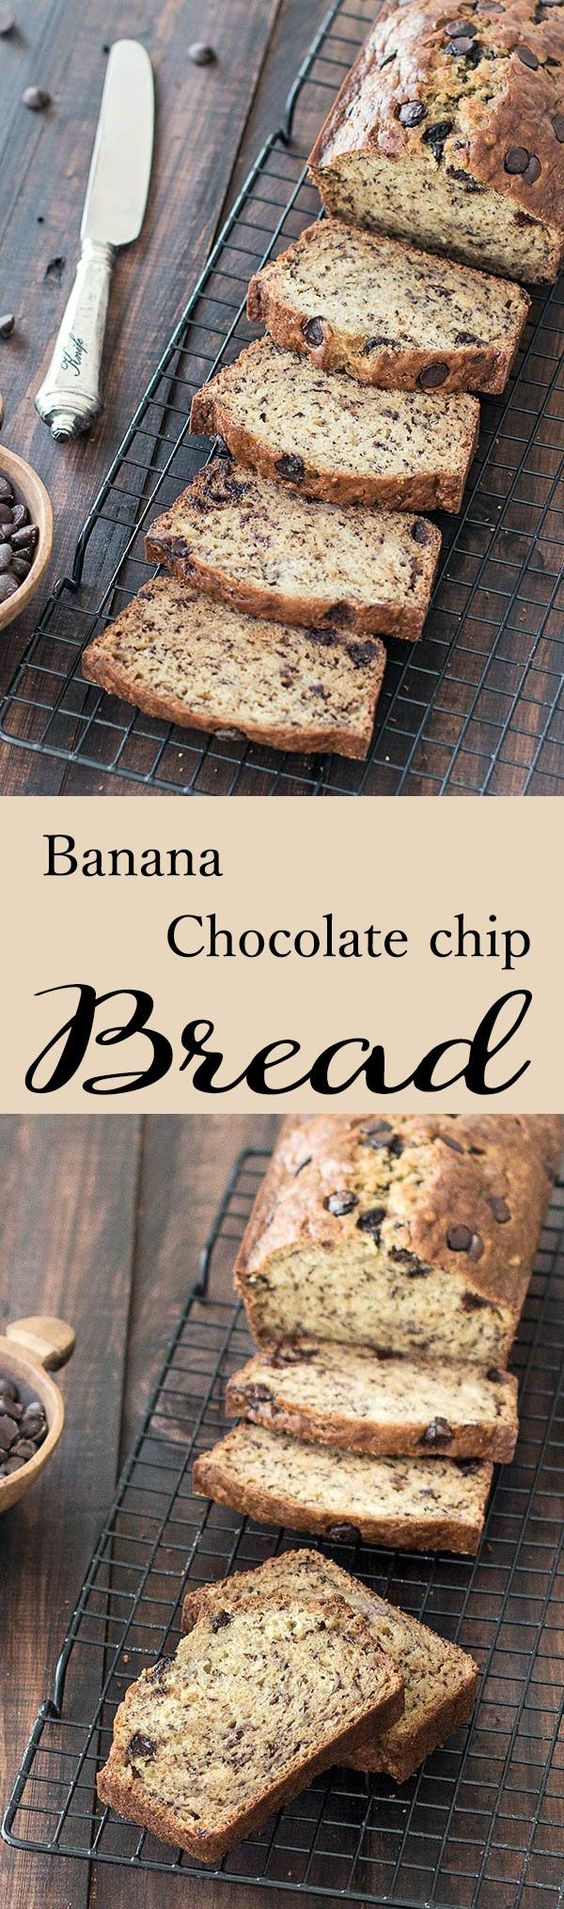 Banana Chocolate Chip Bread: so easy to make and a great way to use up overripe bananas! Moist, dense, and just sweet enough…this is the best banana bread recipe for breakfast!